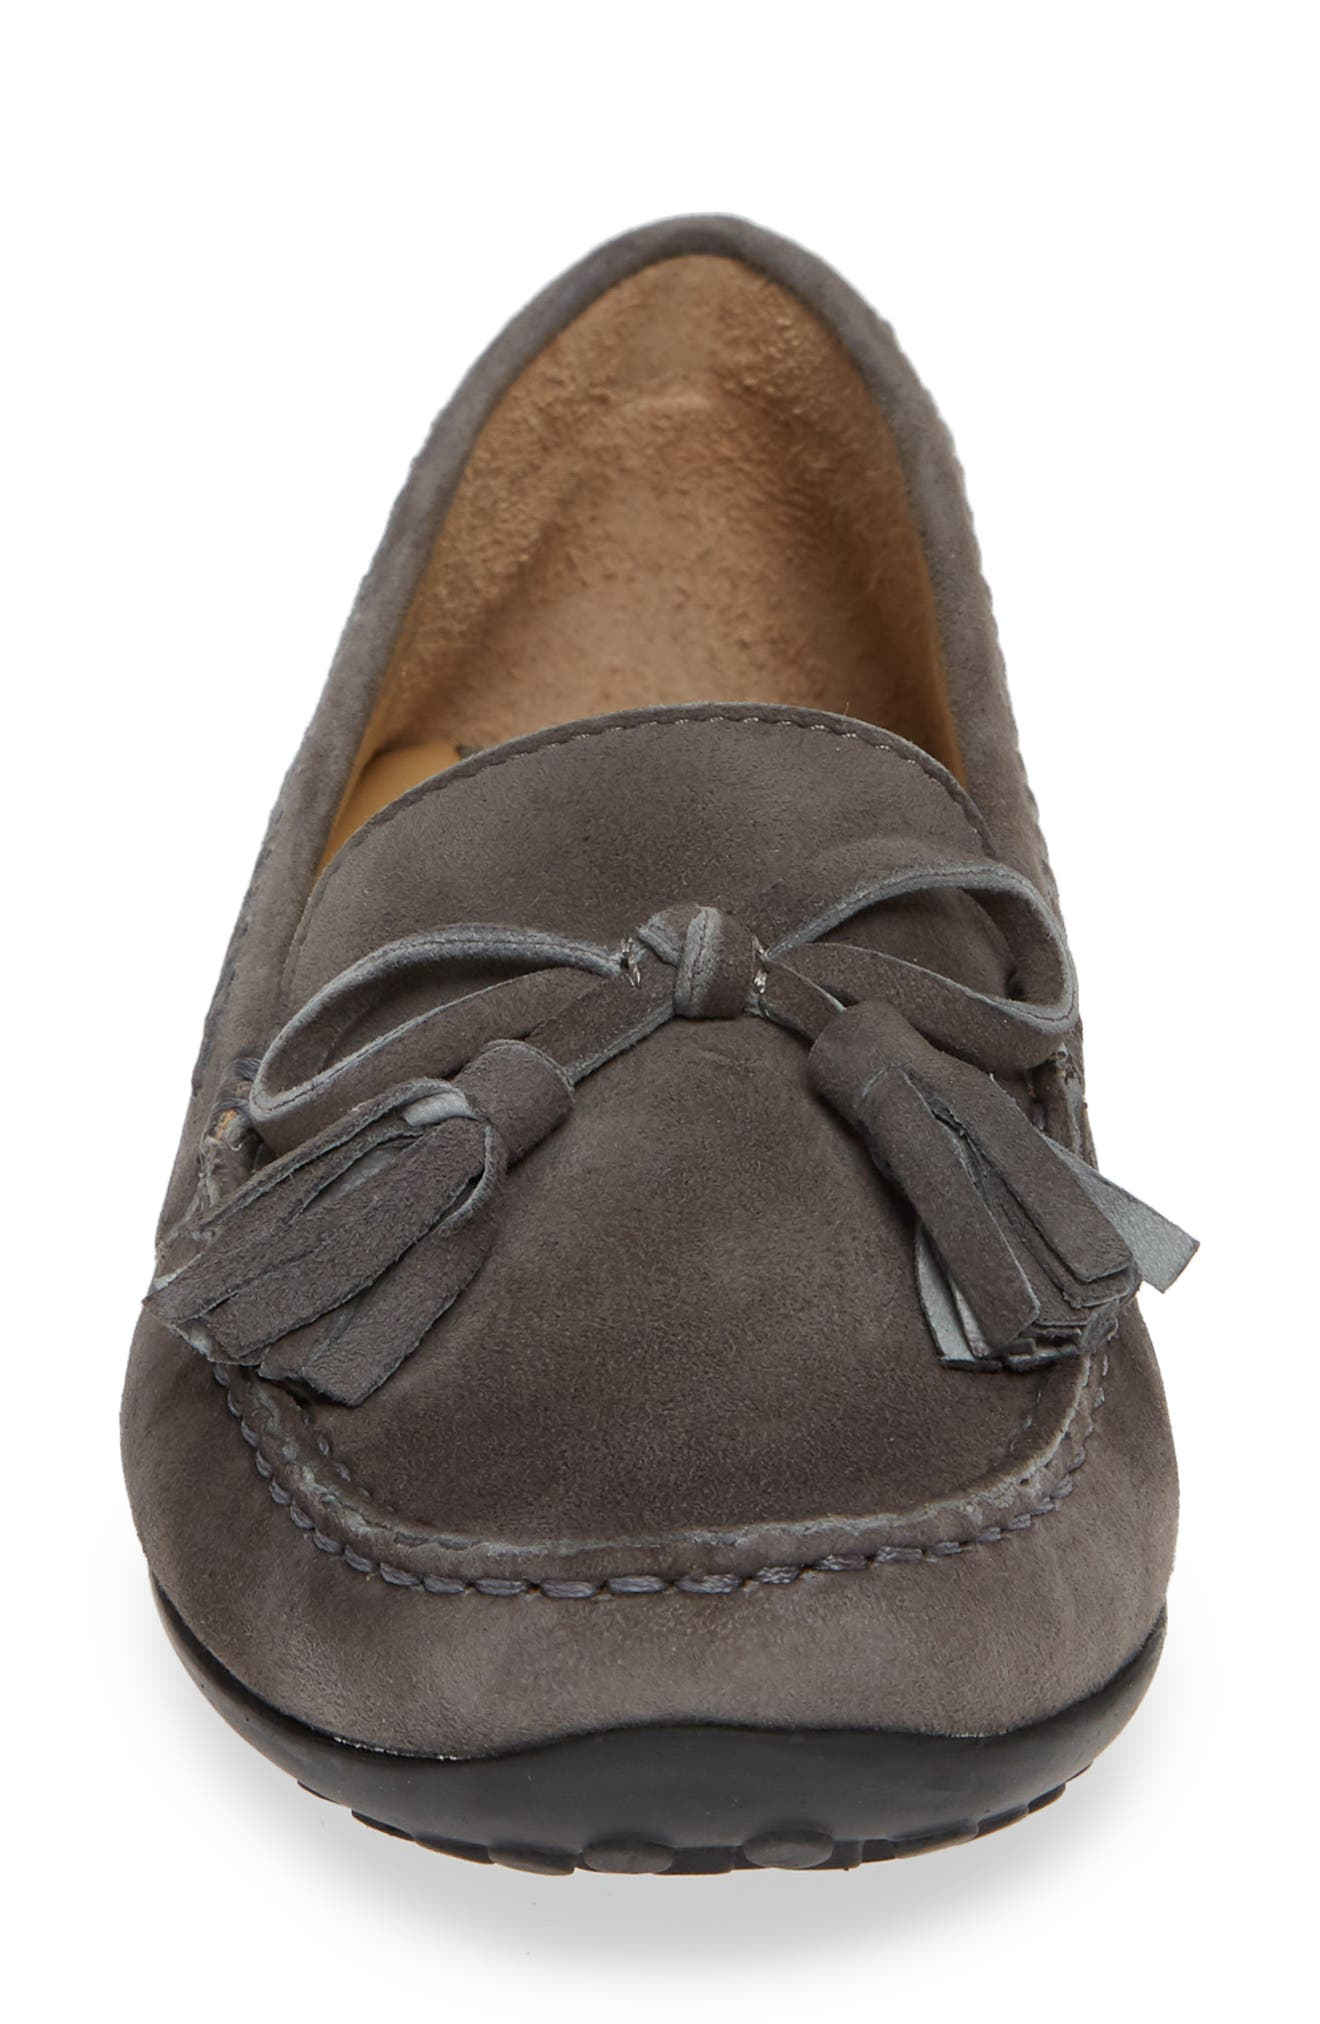 Acajou Driving Moccasin,                             Alternate thumbnail 4, color,                             GREY SUEDE